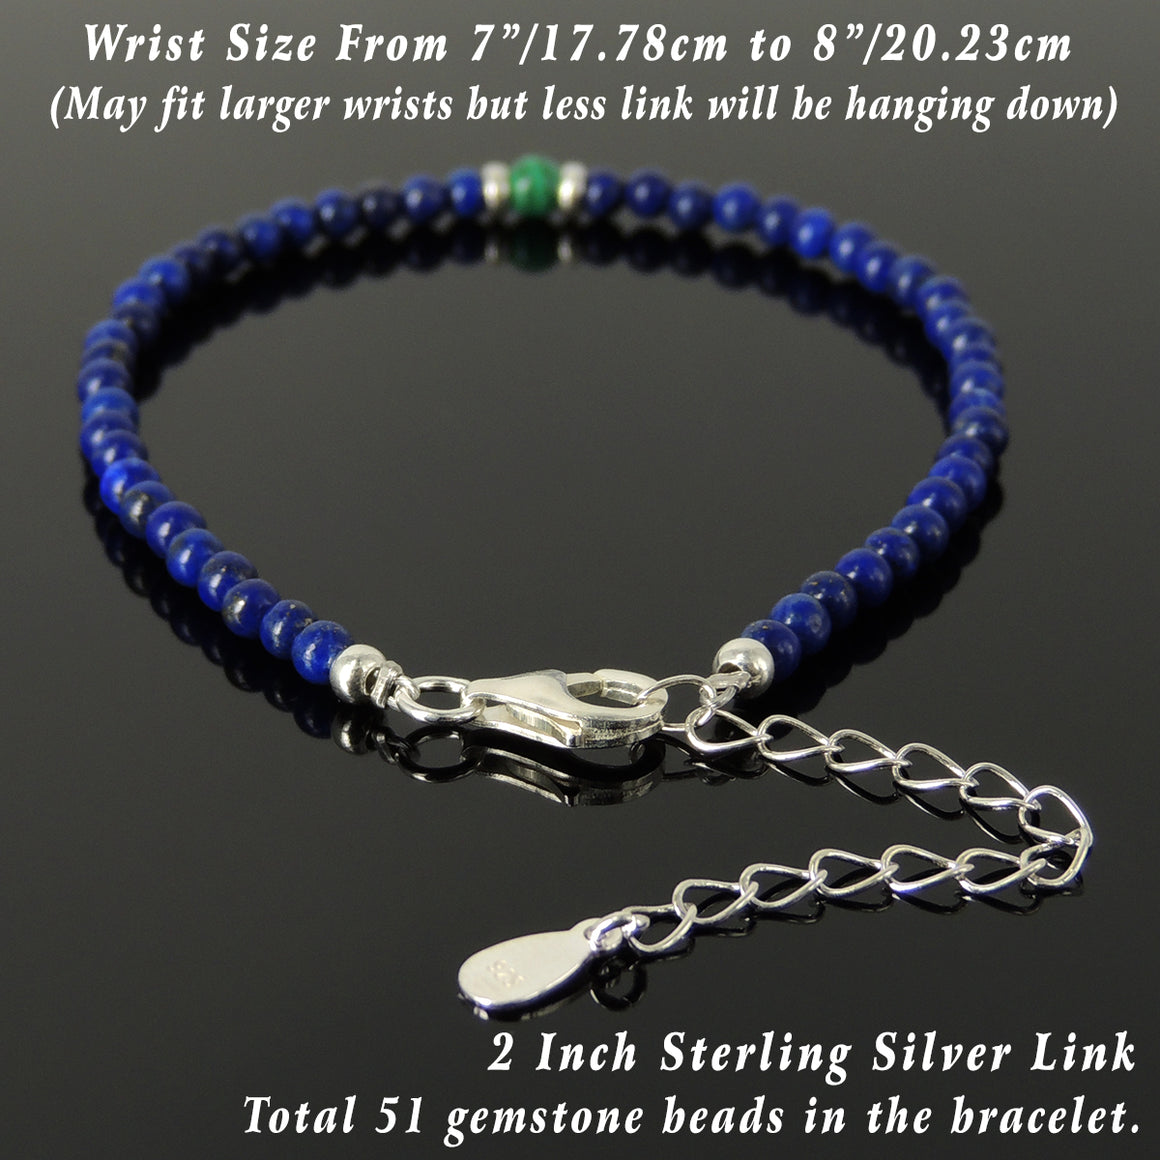 Malachite & Lapis Lazuli Healing Gemstone Bracelet with S925 Sterling Silver Beads, Chain, & Clasp - Handmade by Gem & Silver BR1342